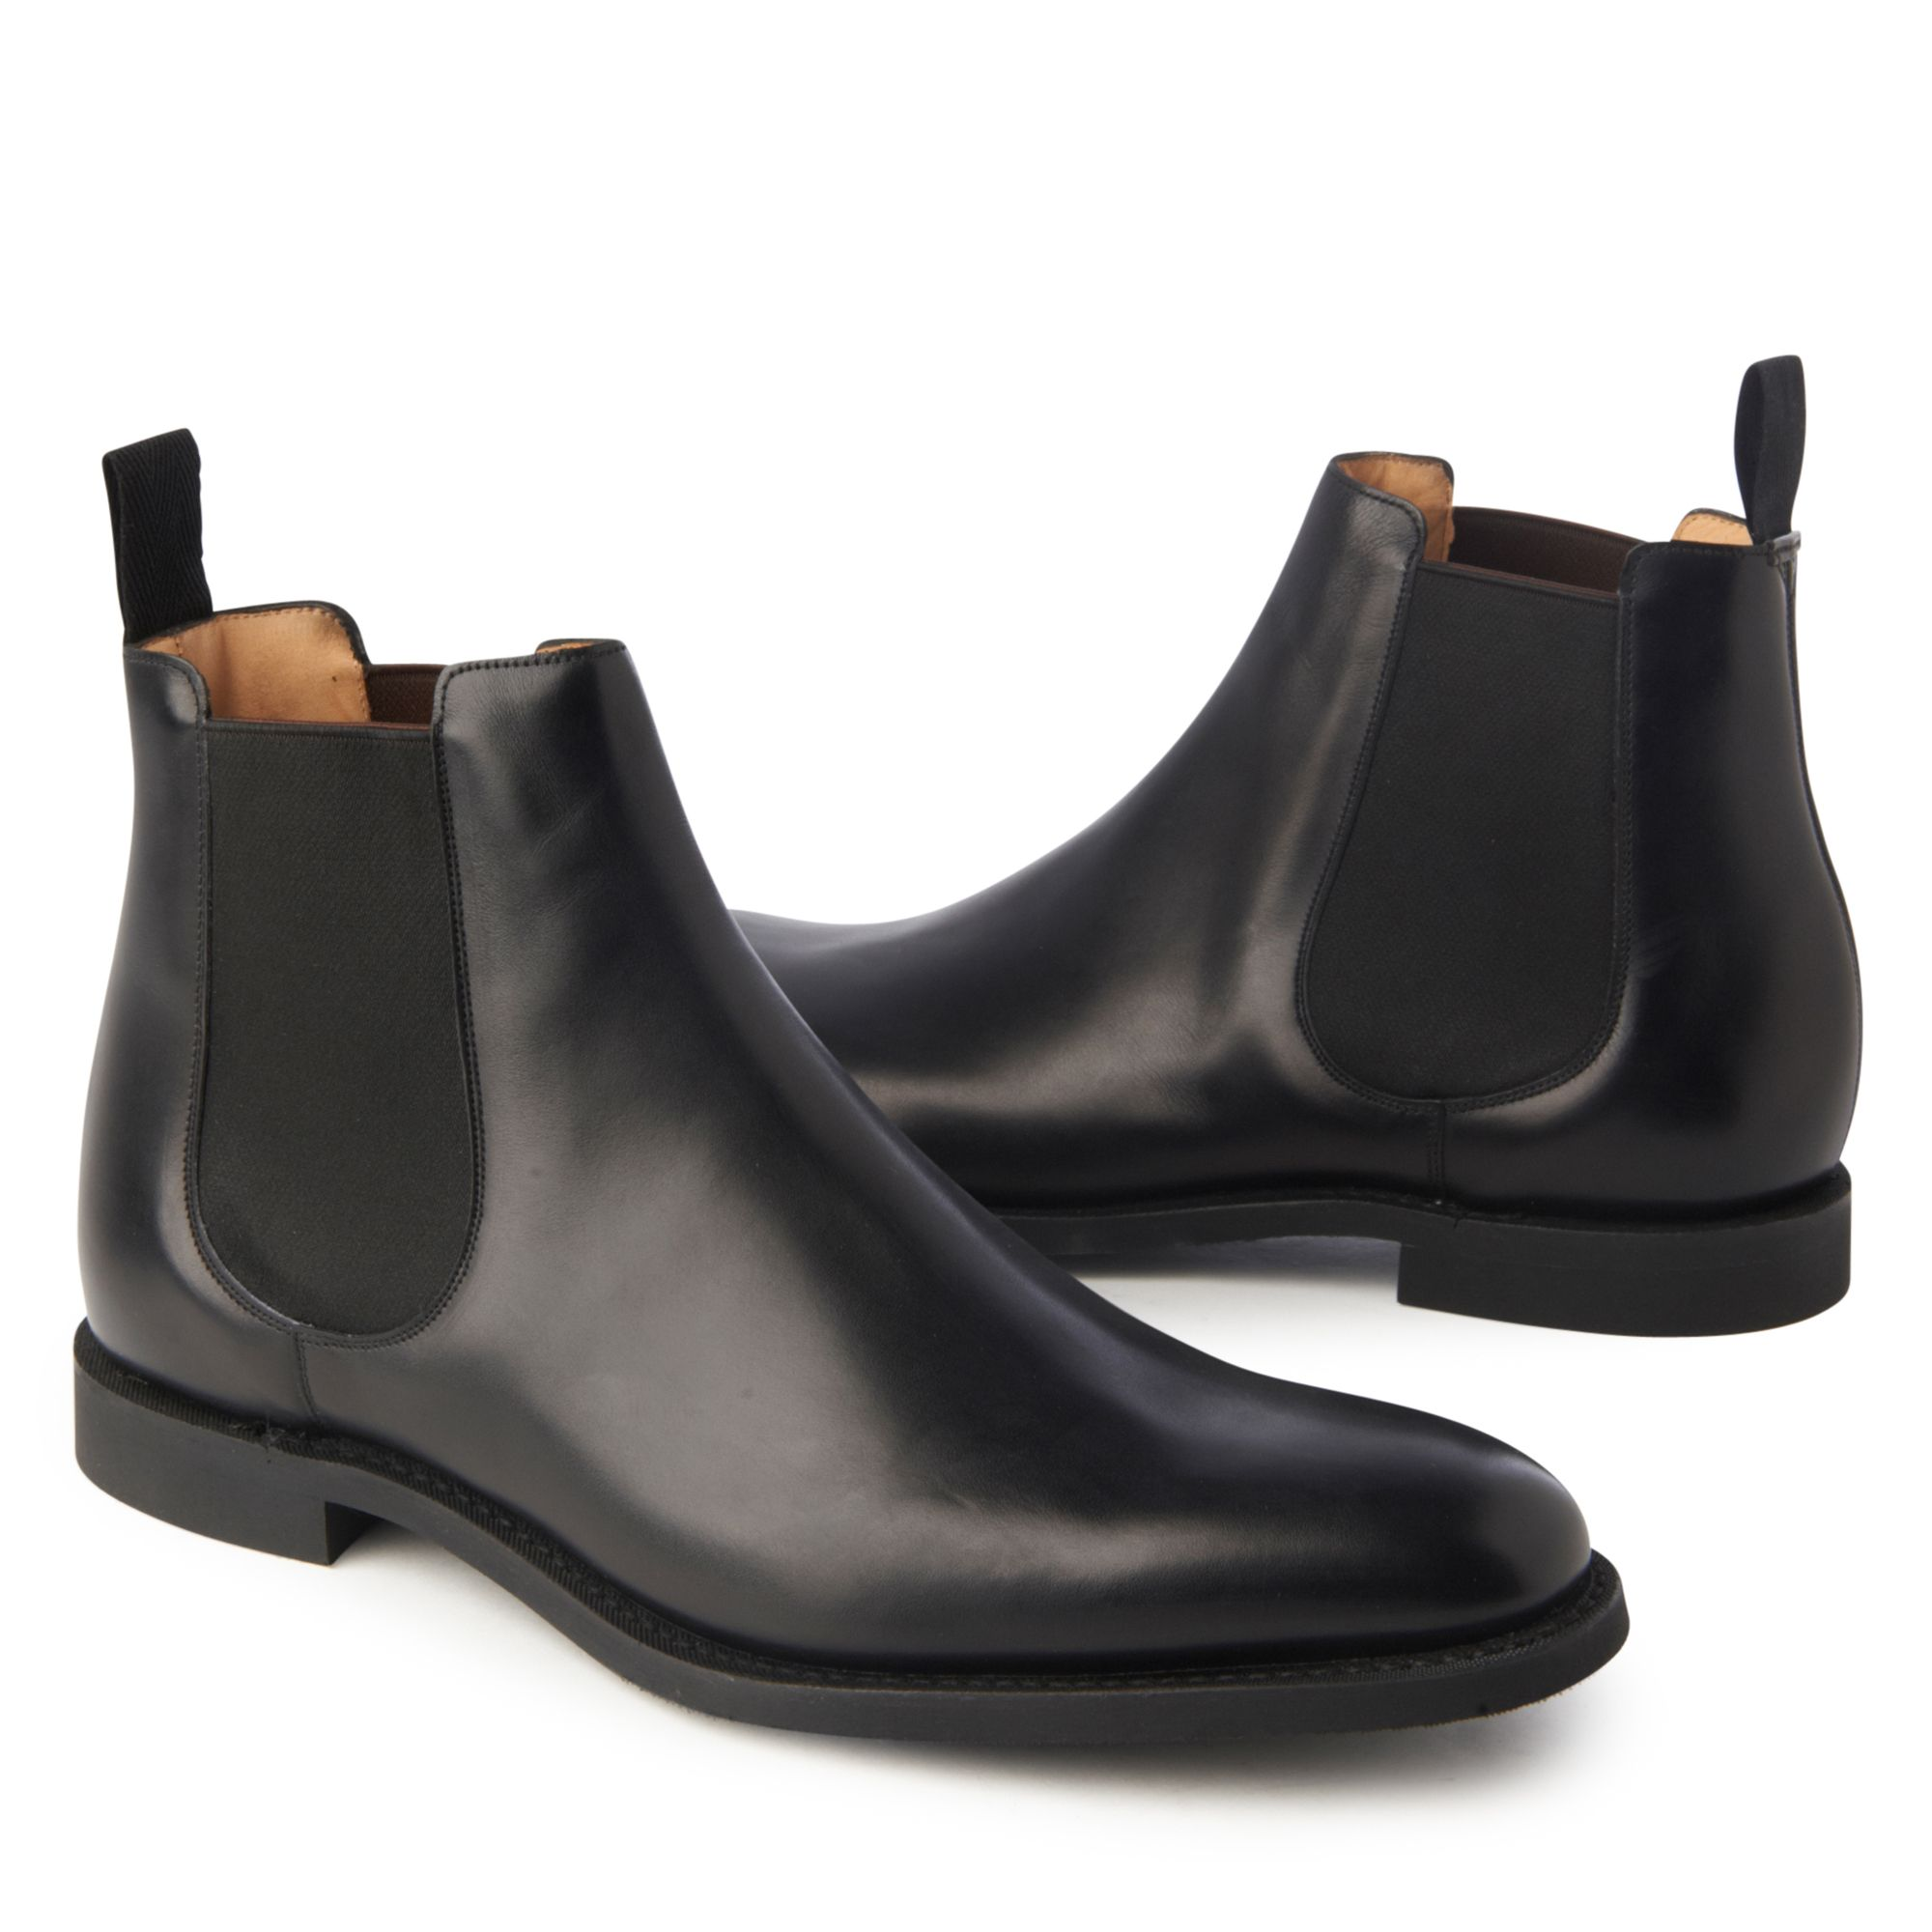 church 39 s ely leather chelsea boots in black for men lyst. Black Bedroom Furniture Sets. Home Design Ideas